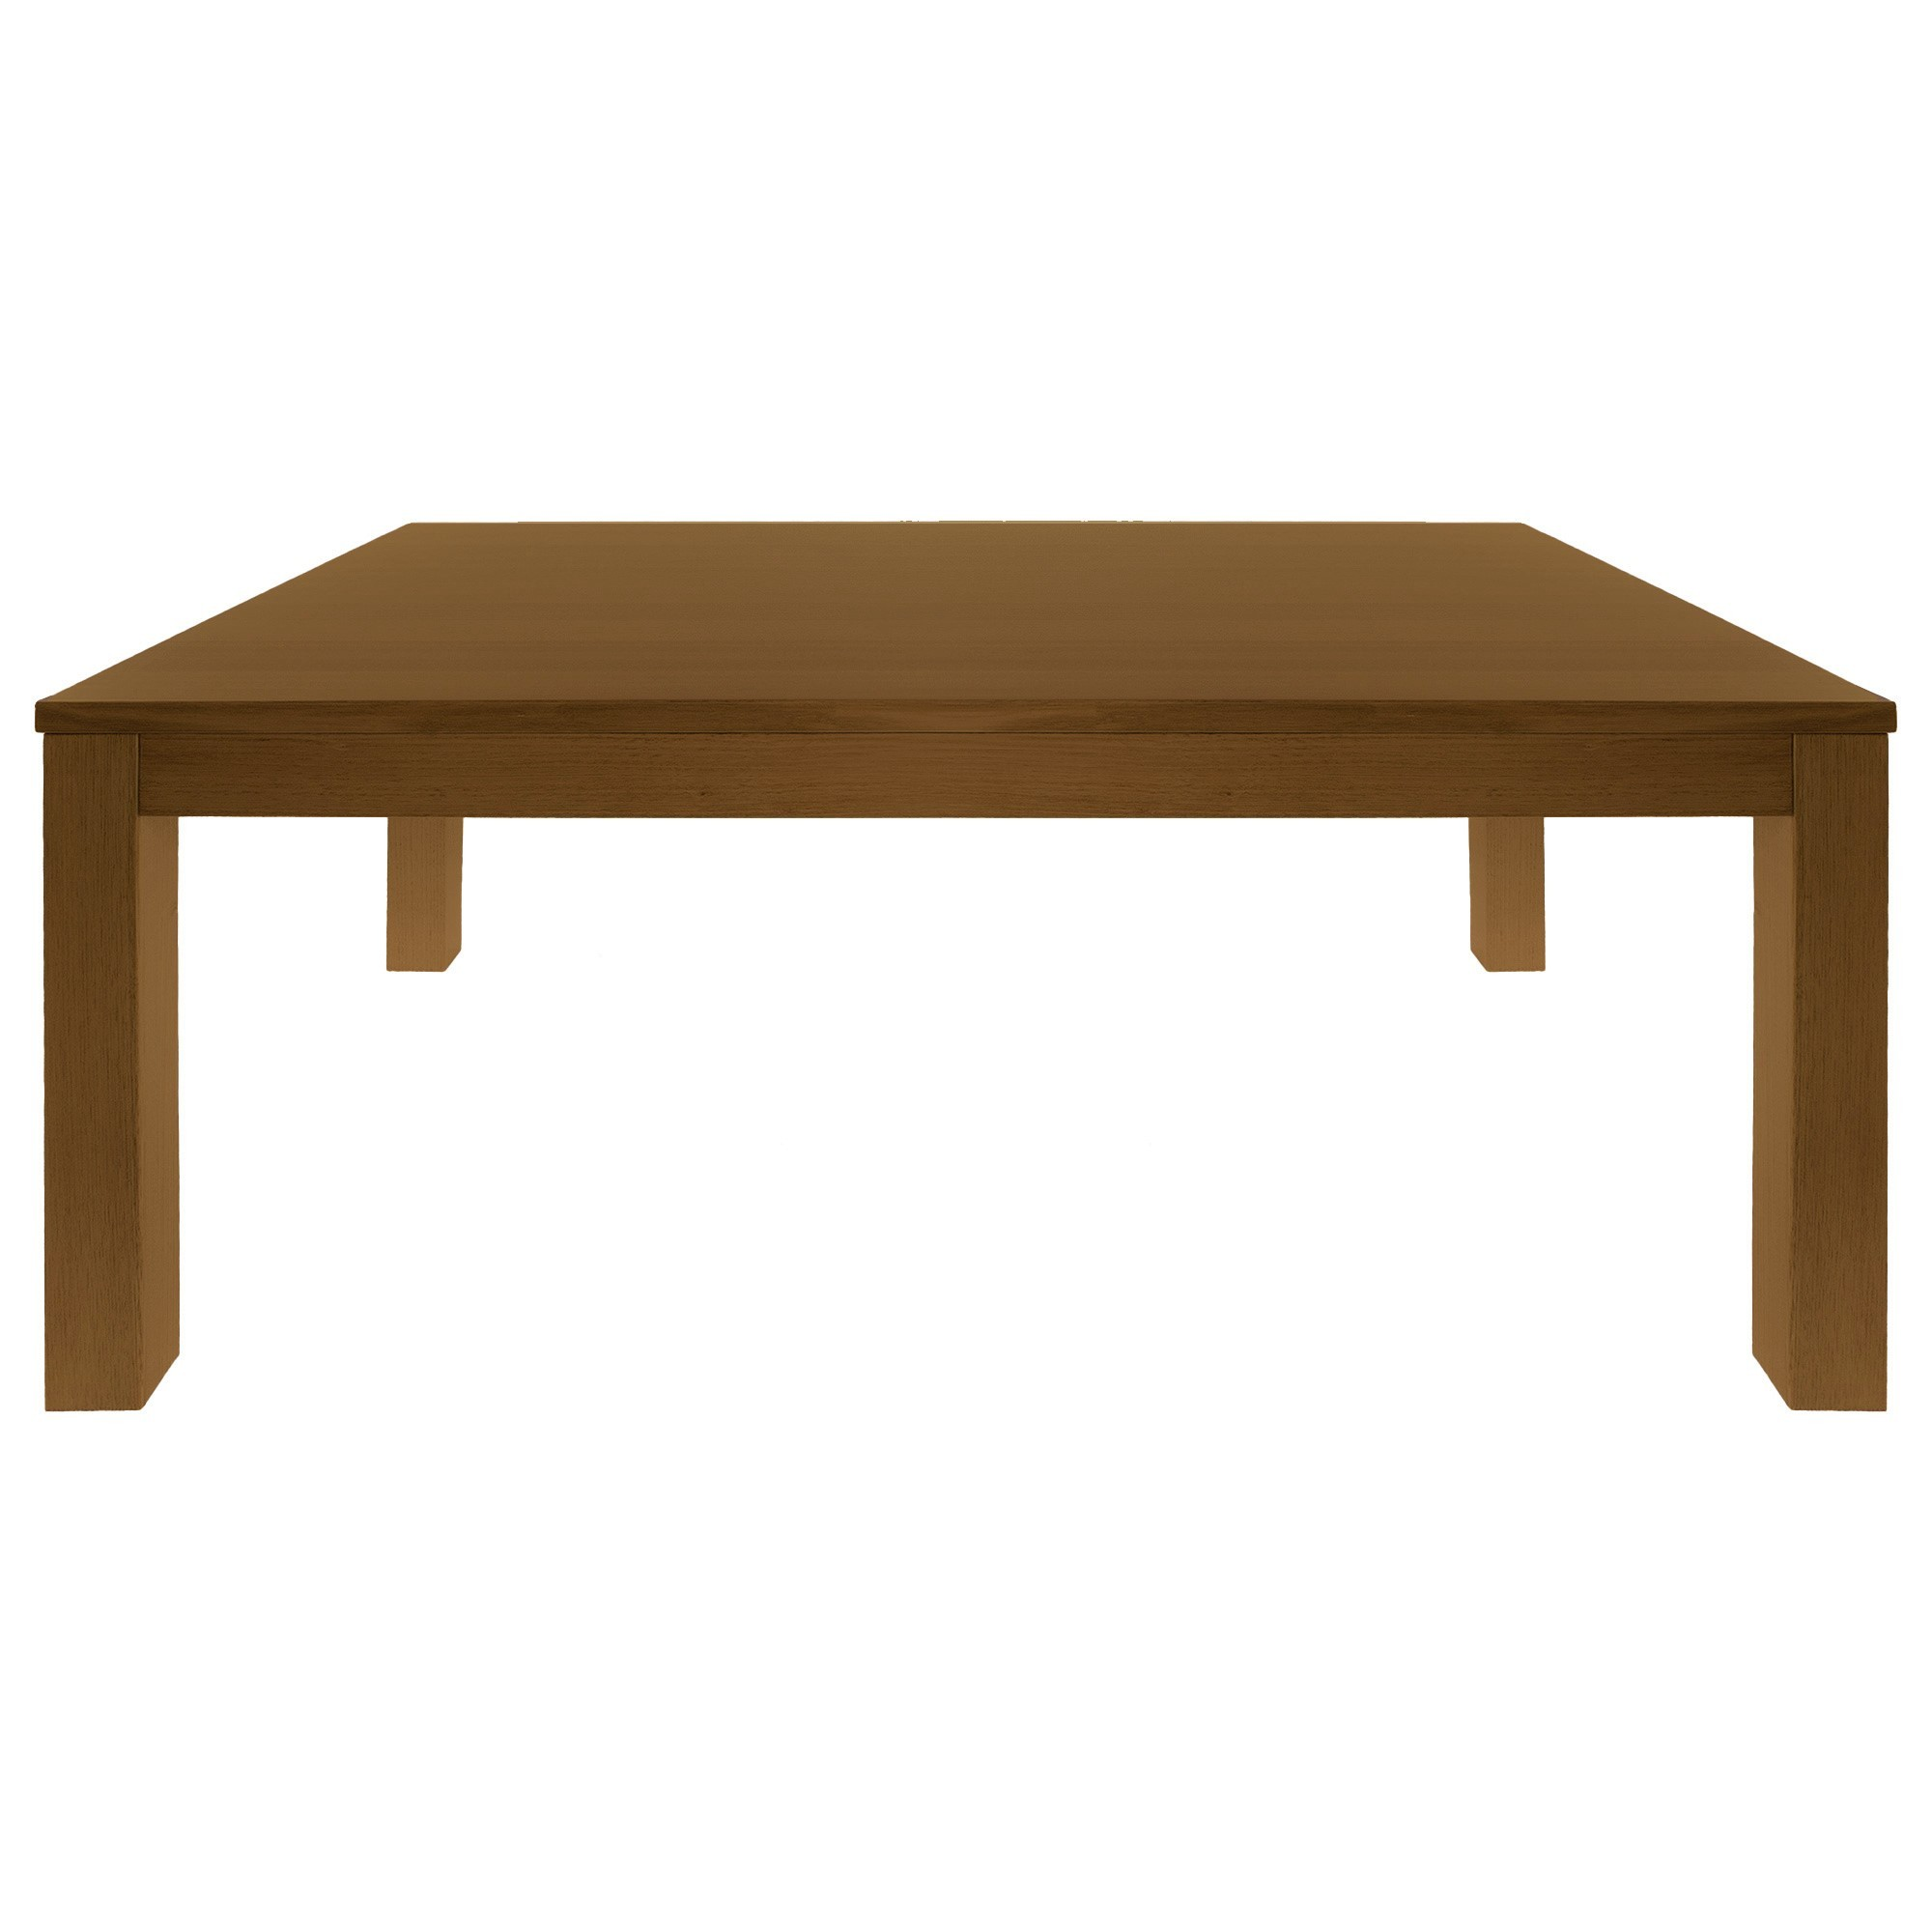 Moselia Tasmanian Oak Timber Dining Table, 210cm, New English Oak